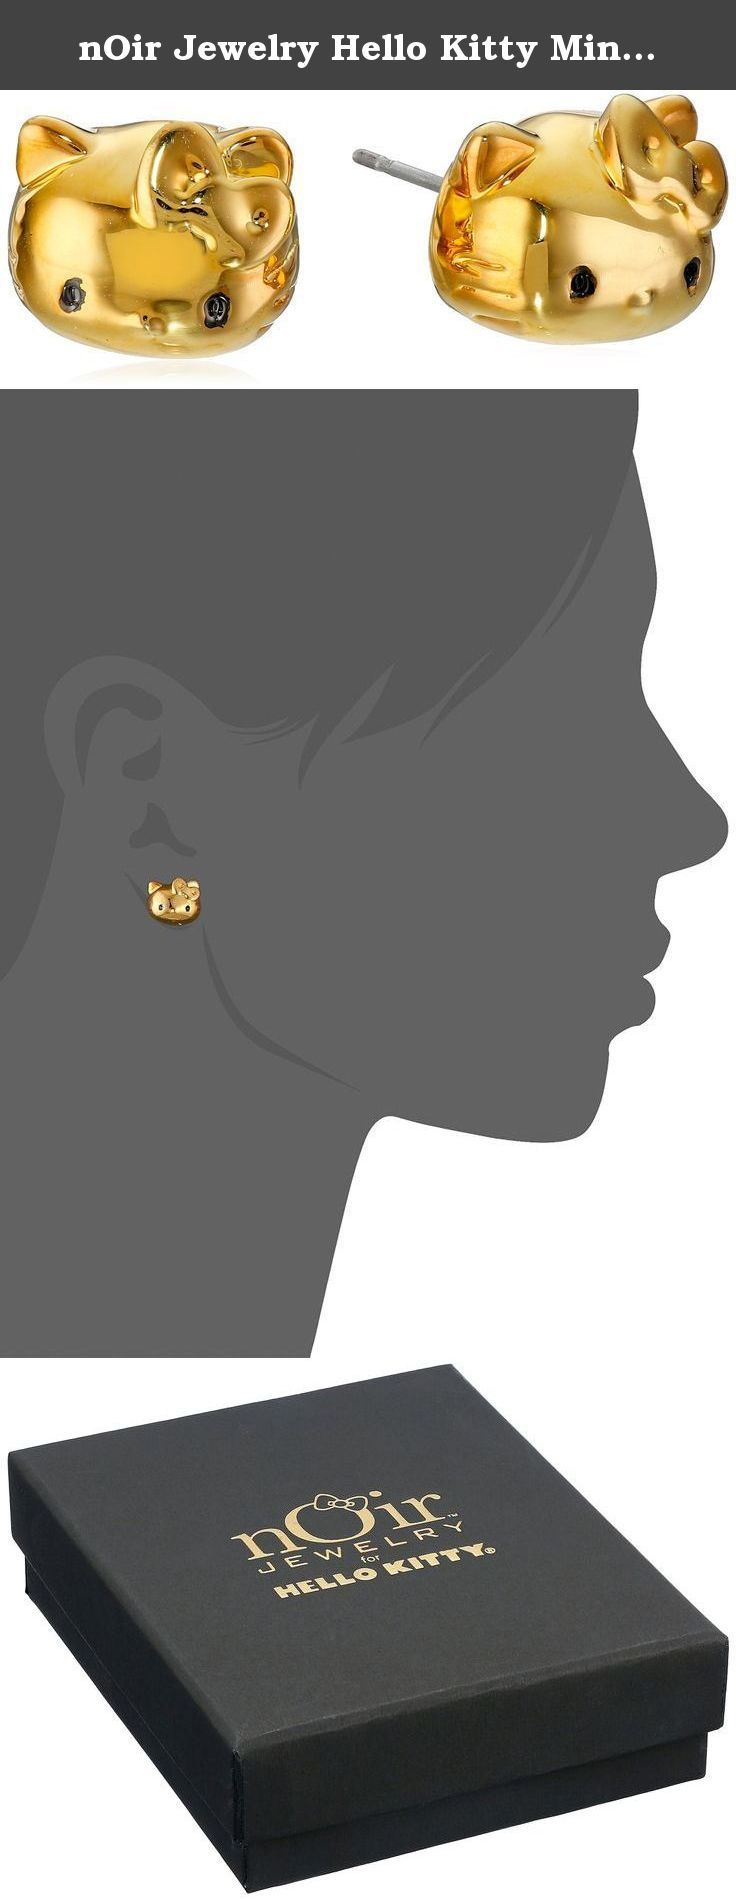 nOir Jewelry Hello Kitty Mini Face Stud Earrings. Made in China.